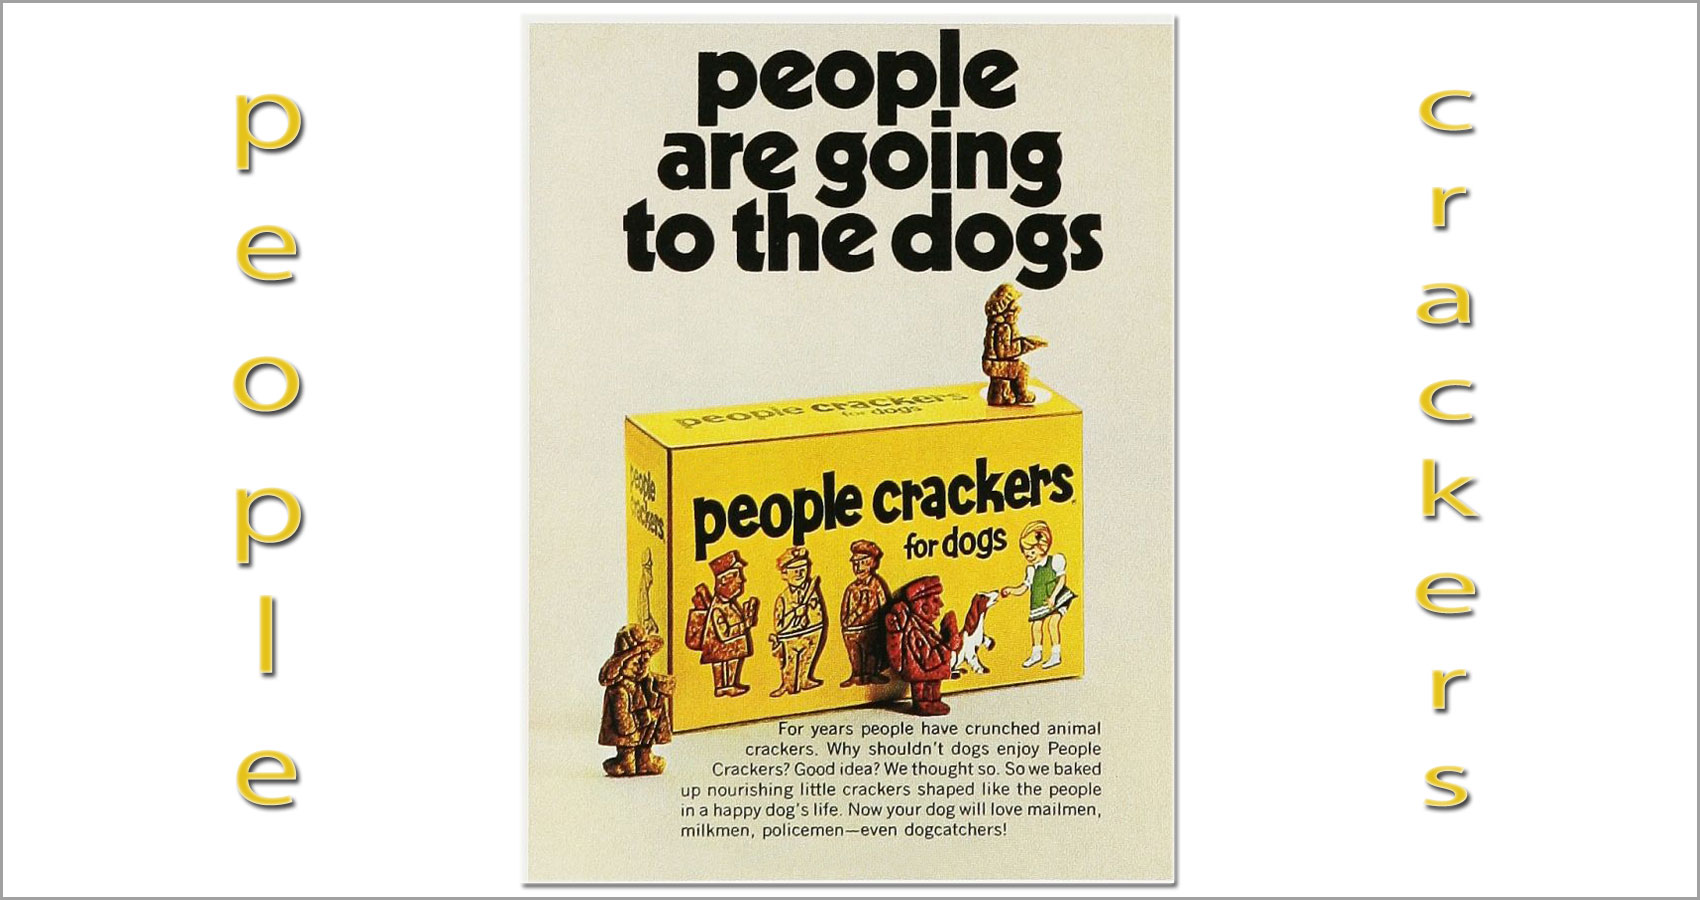 People Crackers, by Deborah Jane at Spillwords.com